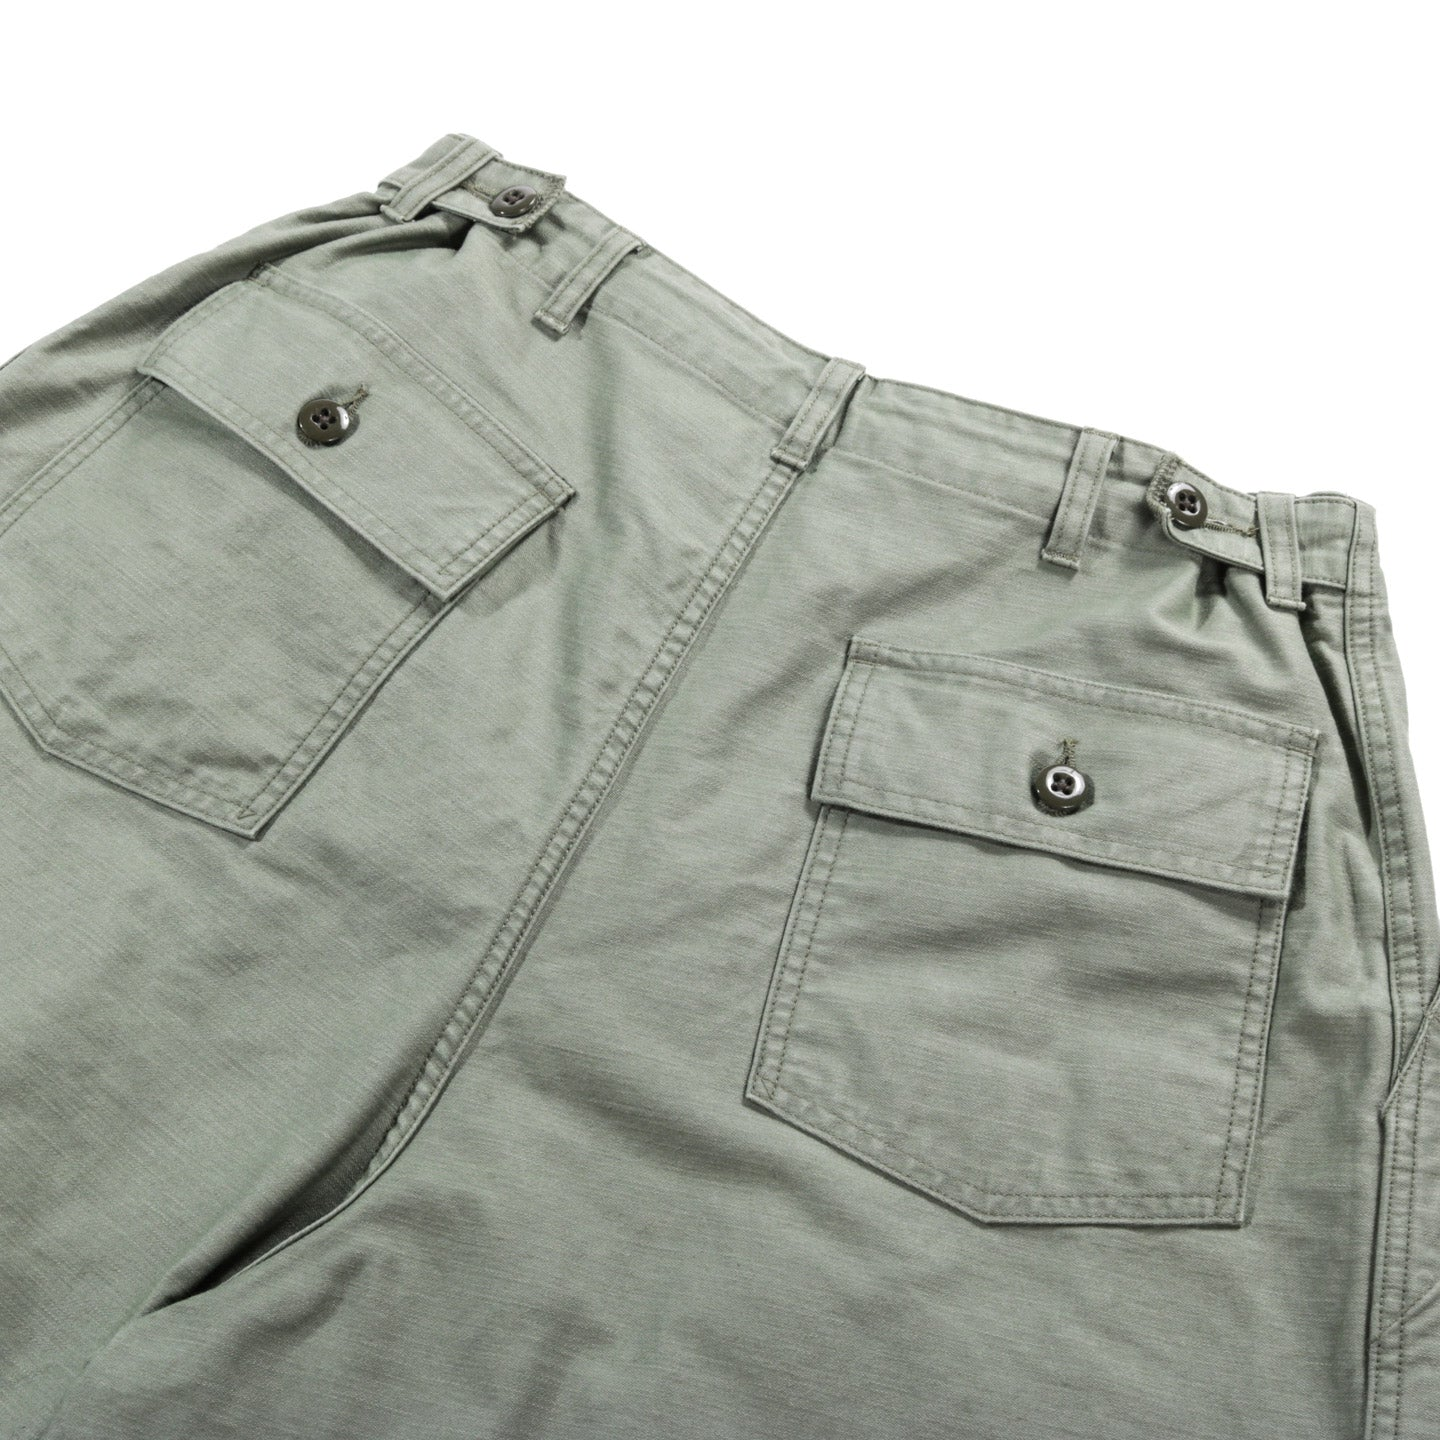 NEEDLES H.D. PANT FATIGUE OLIVE